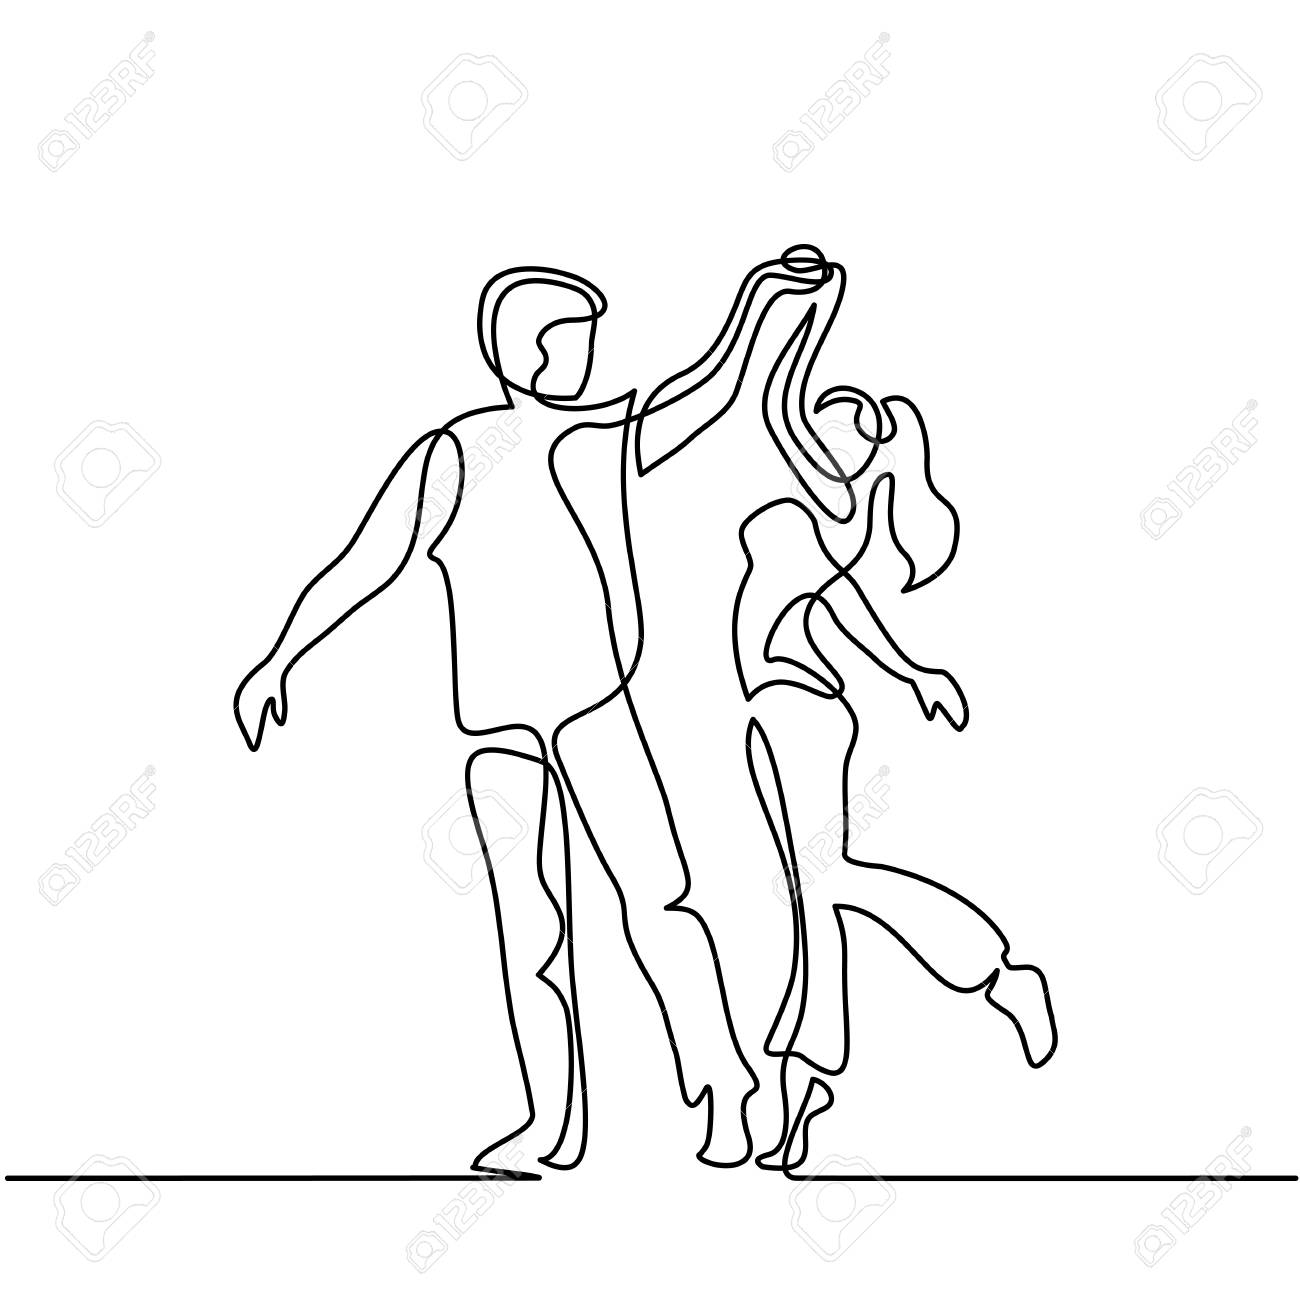 1300x1300 Continuous Line Drawing. Happy Loving Couple Dancing. Vector